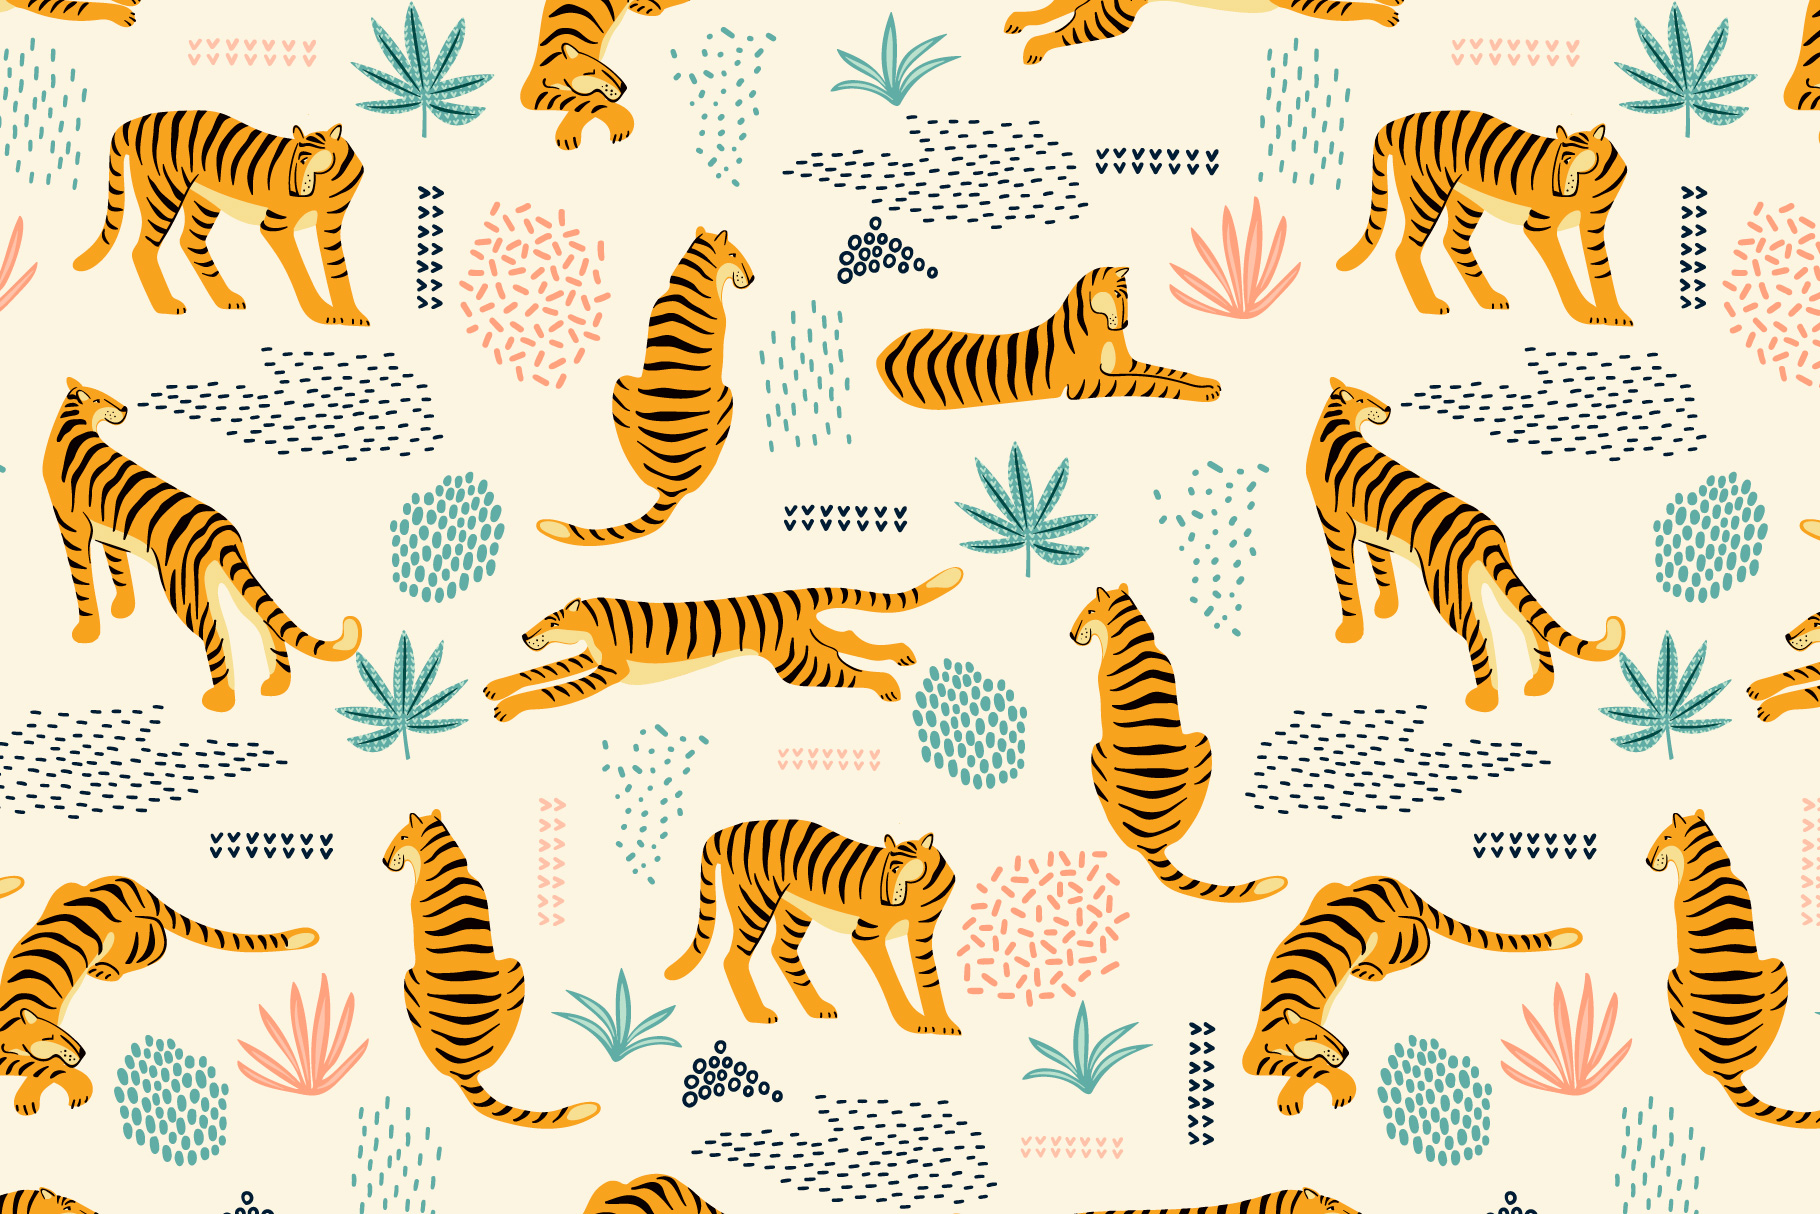 Tiger Collection. Patterns & Elements